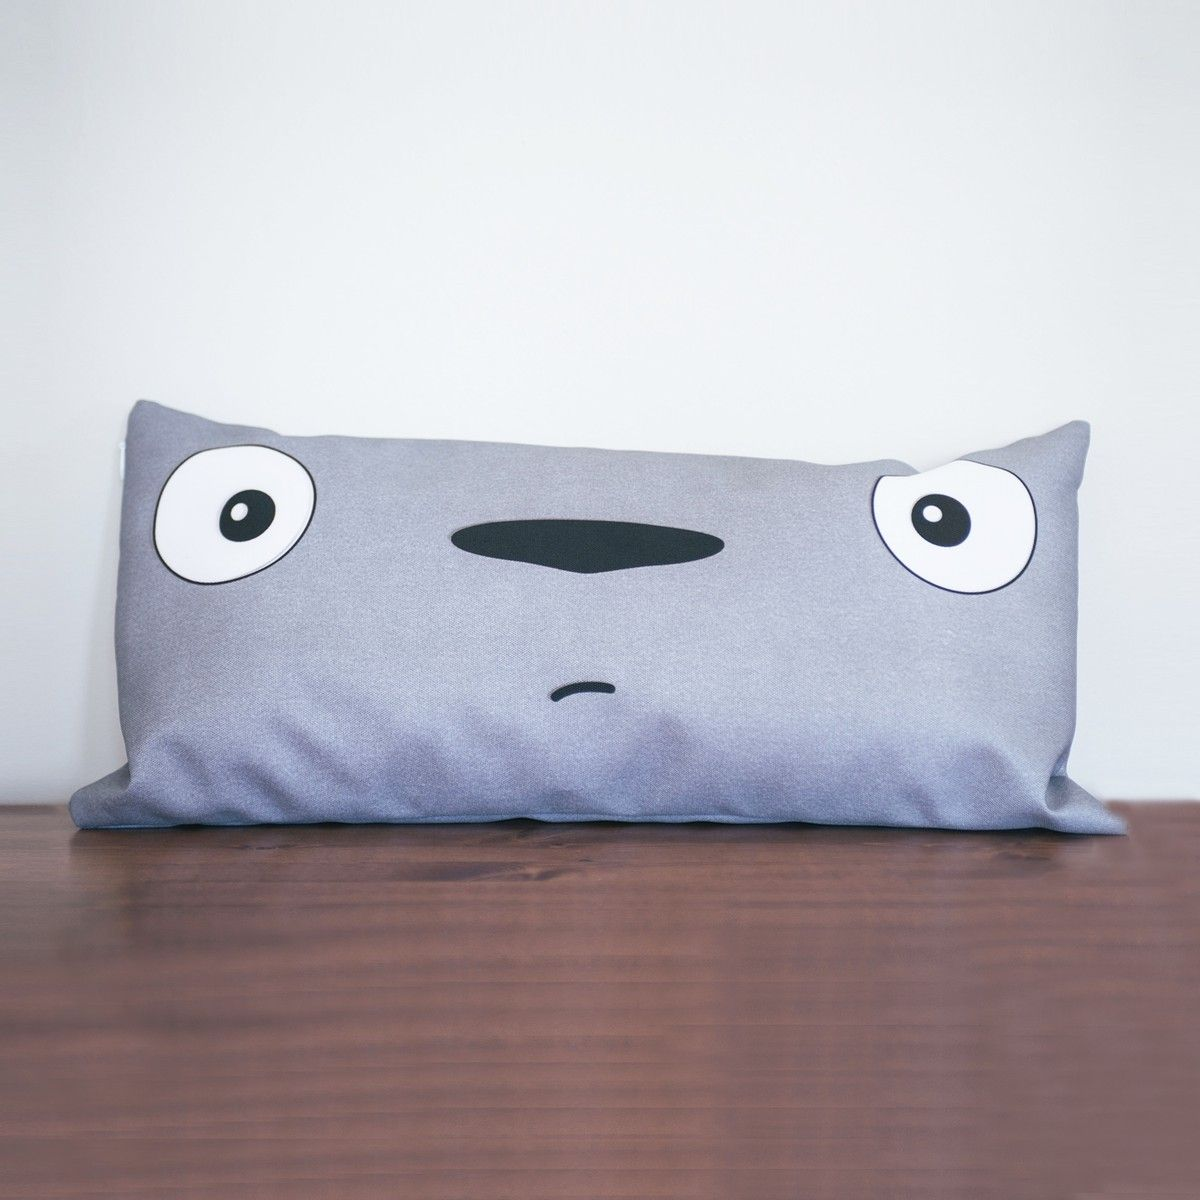 Hello totoro greet your neighborhood forest spirit every day with